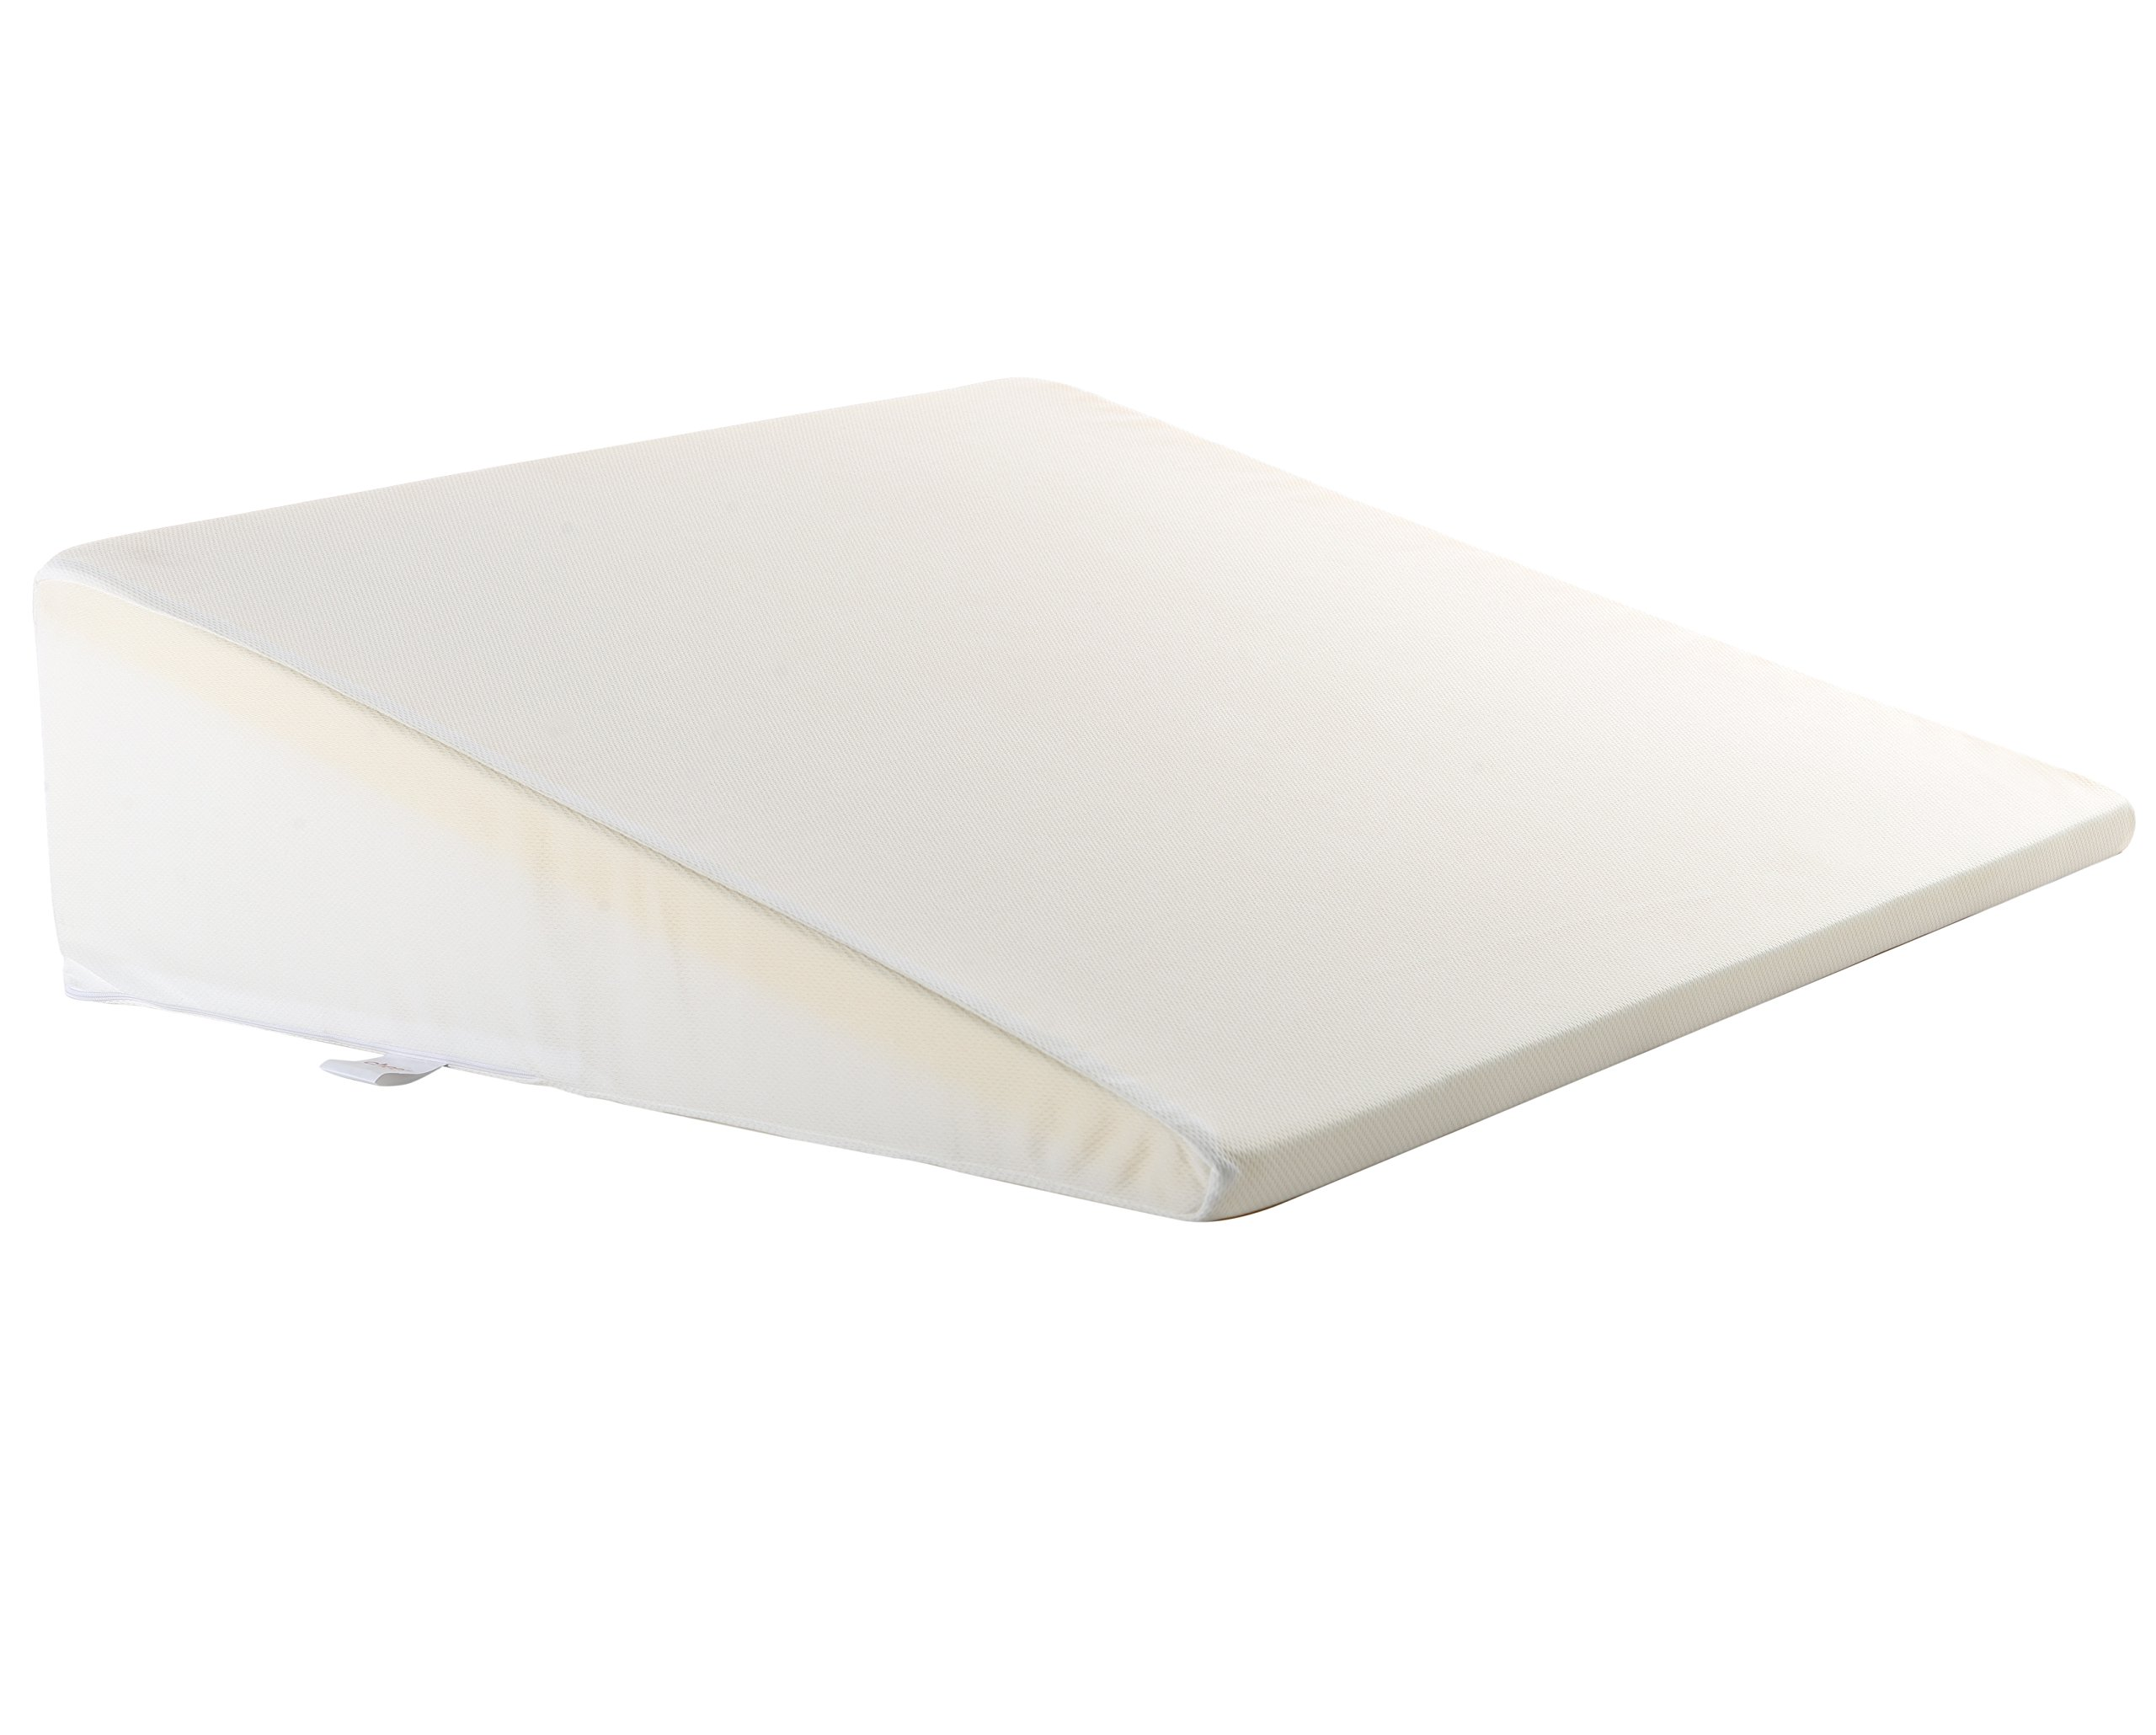 Cheer Collection Memory Foam Wedge Pillow with Washable Cover - for Acid Reflux, Head or Leg Elevation or Reading Support in Bed